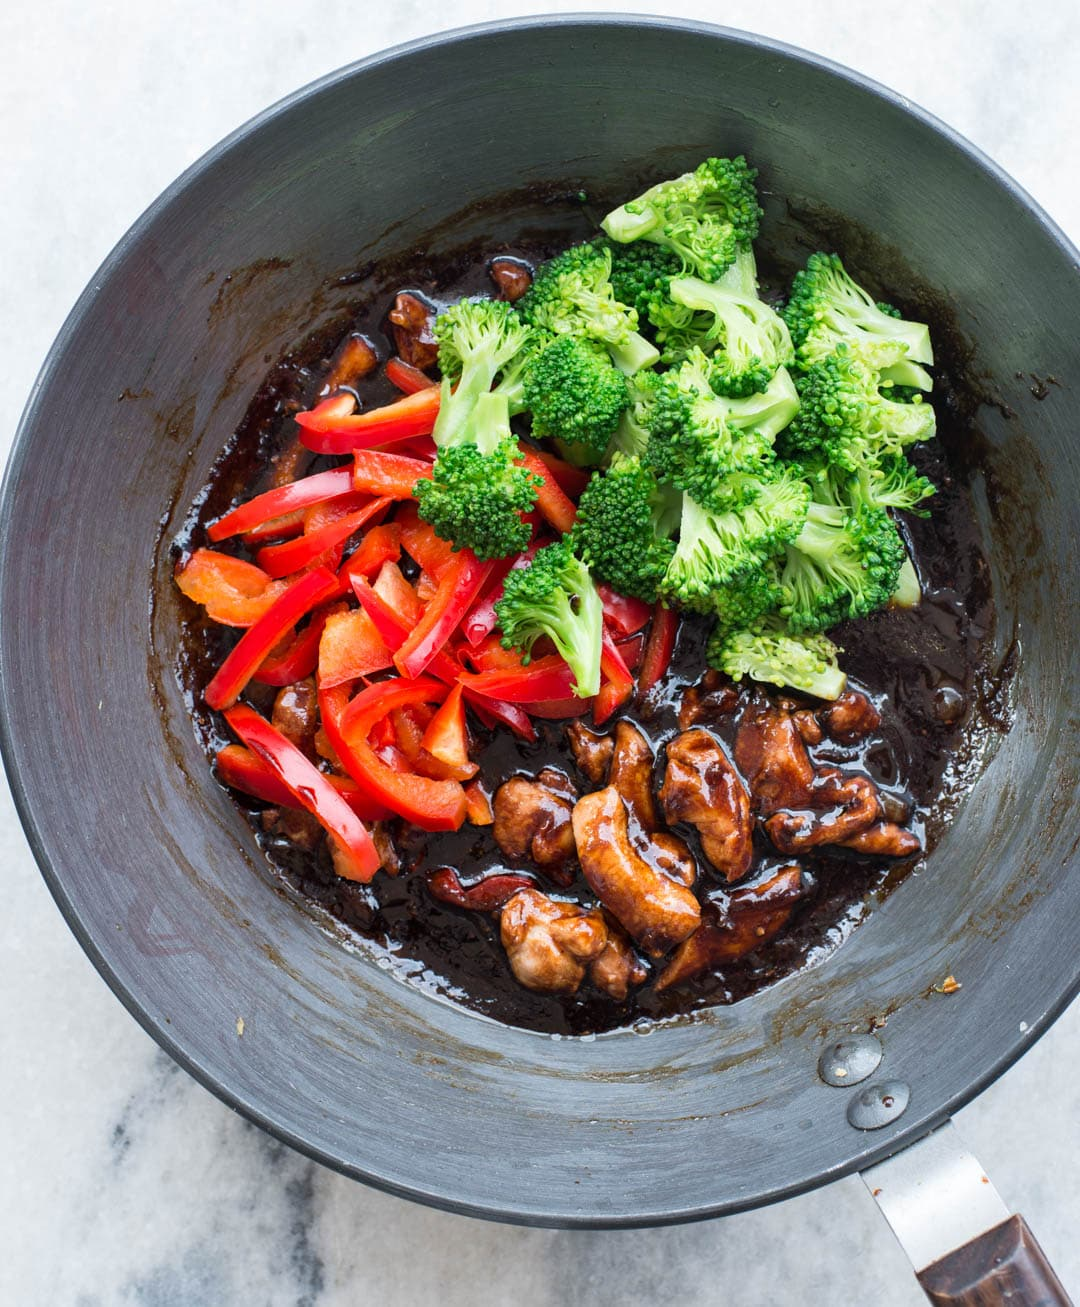 Vegetables like chili-peppers and broccoli added to chicken cooked in asian stir fry sauce in a wok.